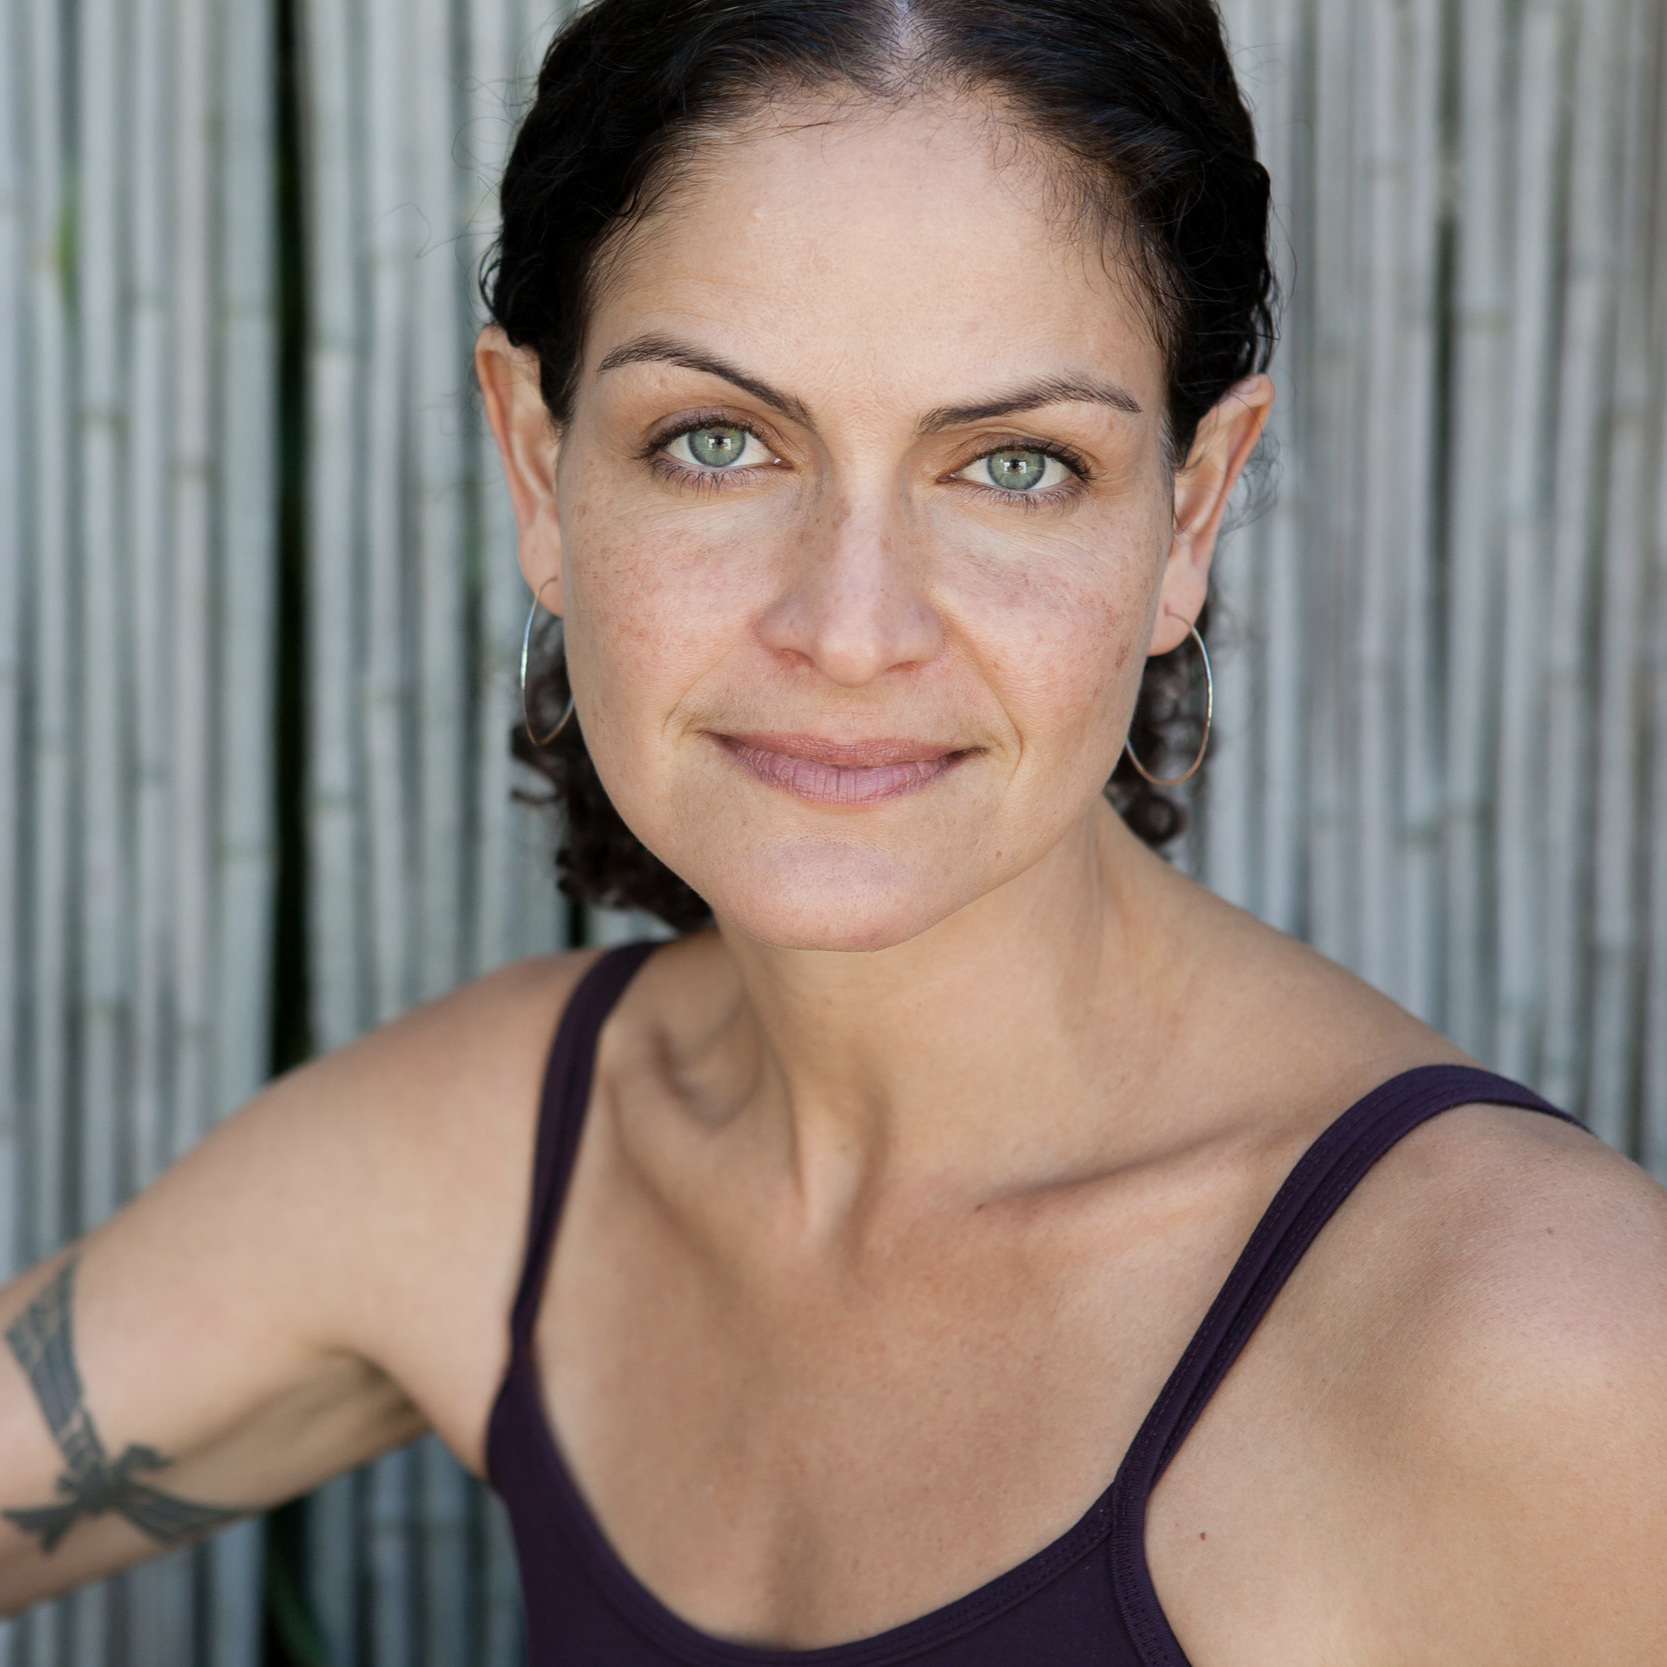 Hala Khouri - trauma-informed yogaHala is a global leading educator in yoga, trauma, and social justice. A teacher for nearly 30 years, she is also a trauma psychotherapist and longtime activist. Hala is a co-founder of Off the Mat and Into the World, a non-profit organization dedicated to utilizing the tools of yoga and somatic practices within a justice framework to inspire people to be conscious leaders of change. She is working on her first book on yoga, trauma, and stress, and is completing her PhD in Community Psychology, Liberation Studies and Eco-psychology